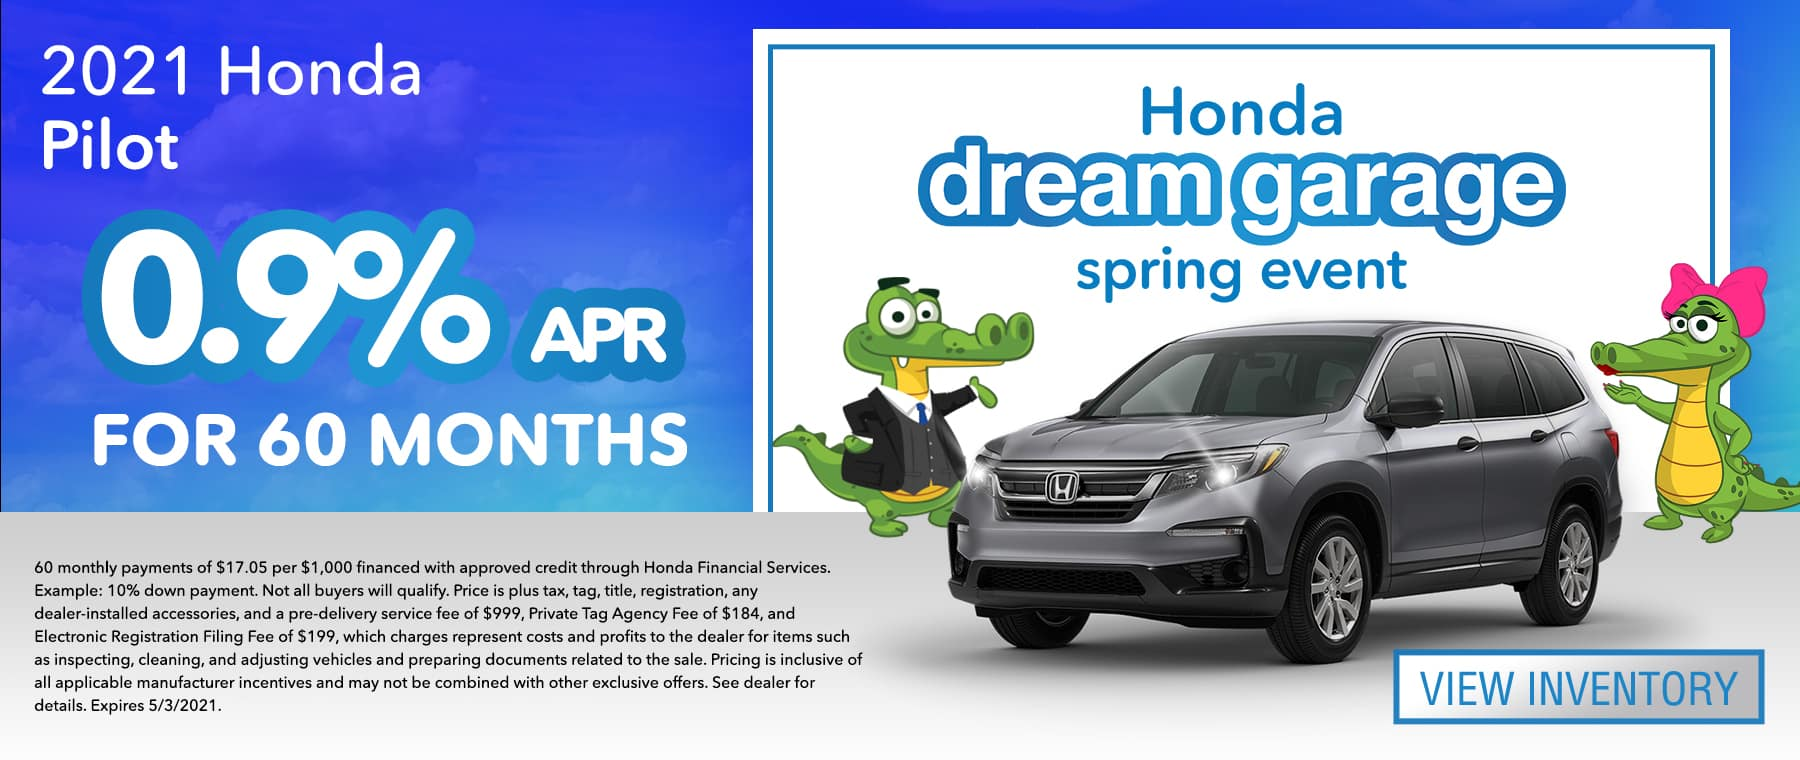 2021 Honda Pilot | 0.9% APR For 60 Months | Honda dream garage spring event